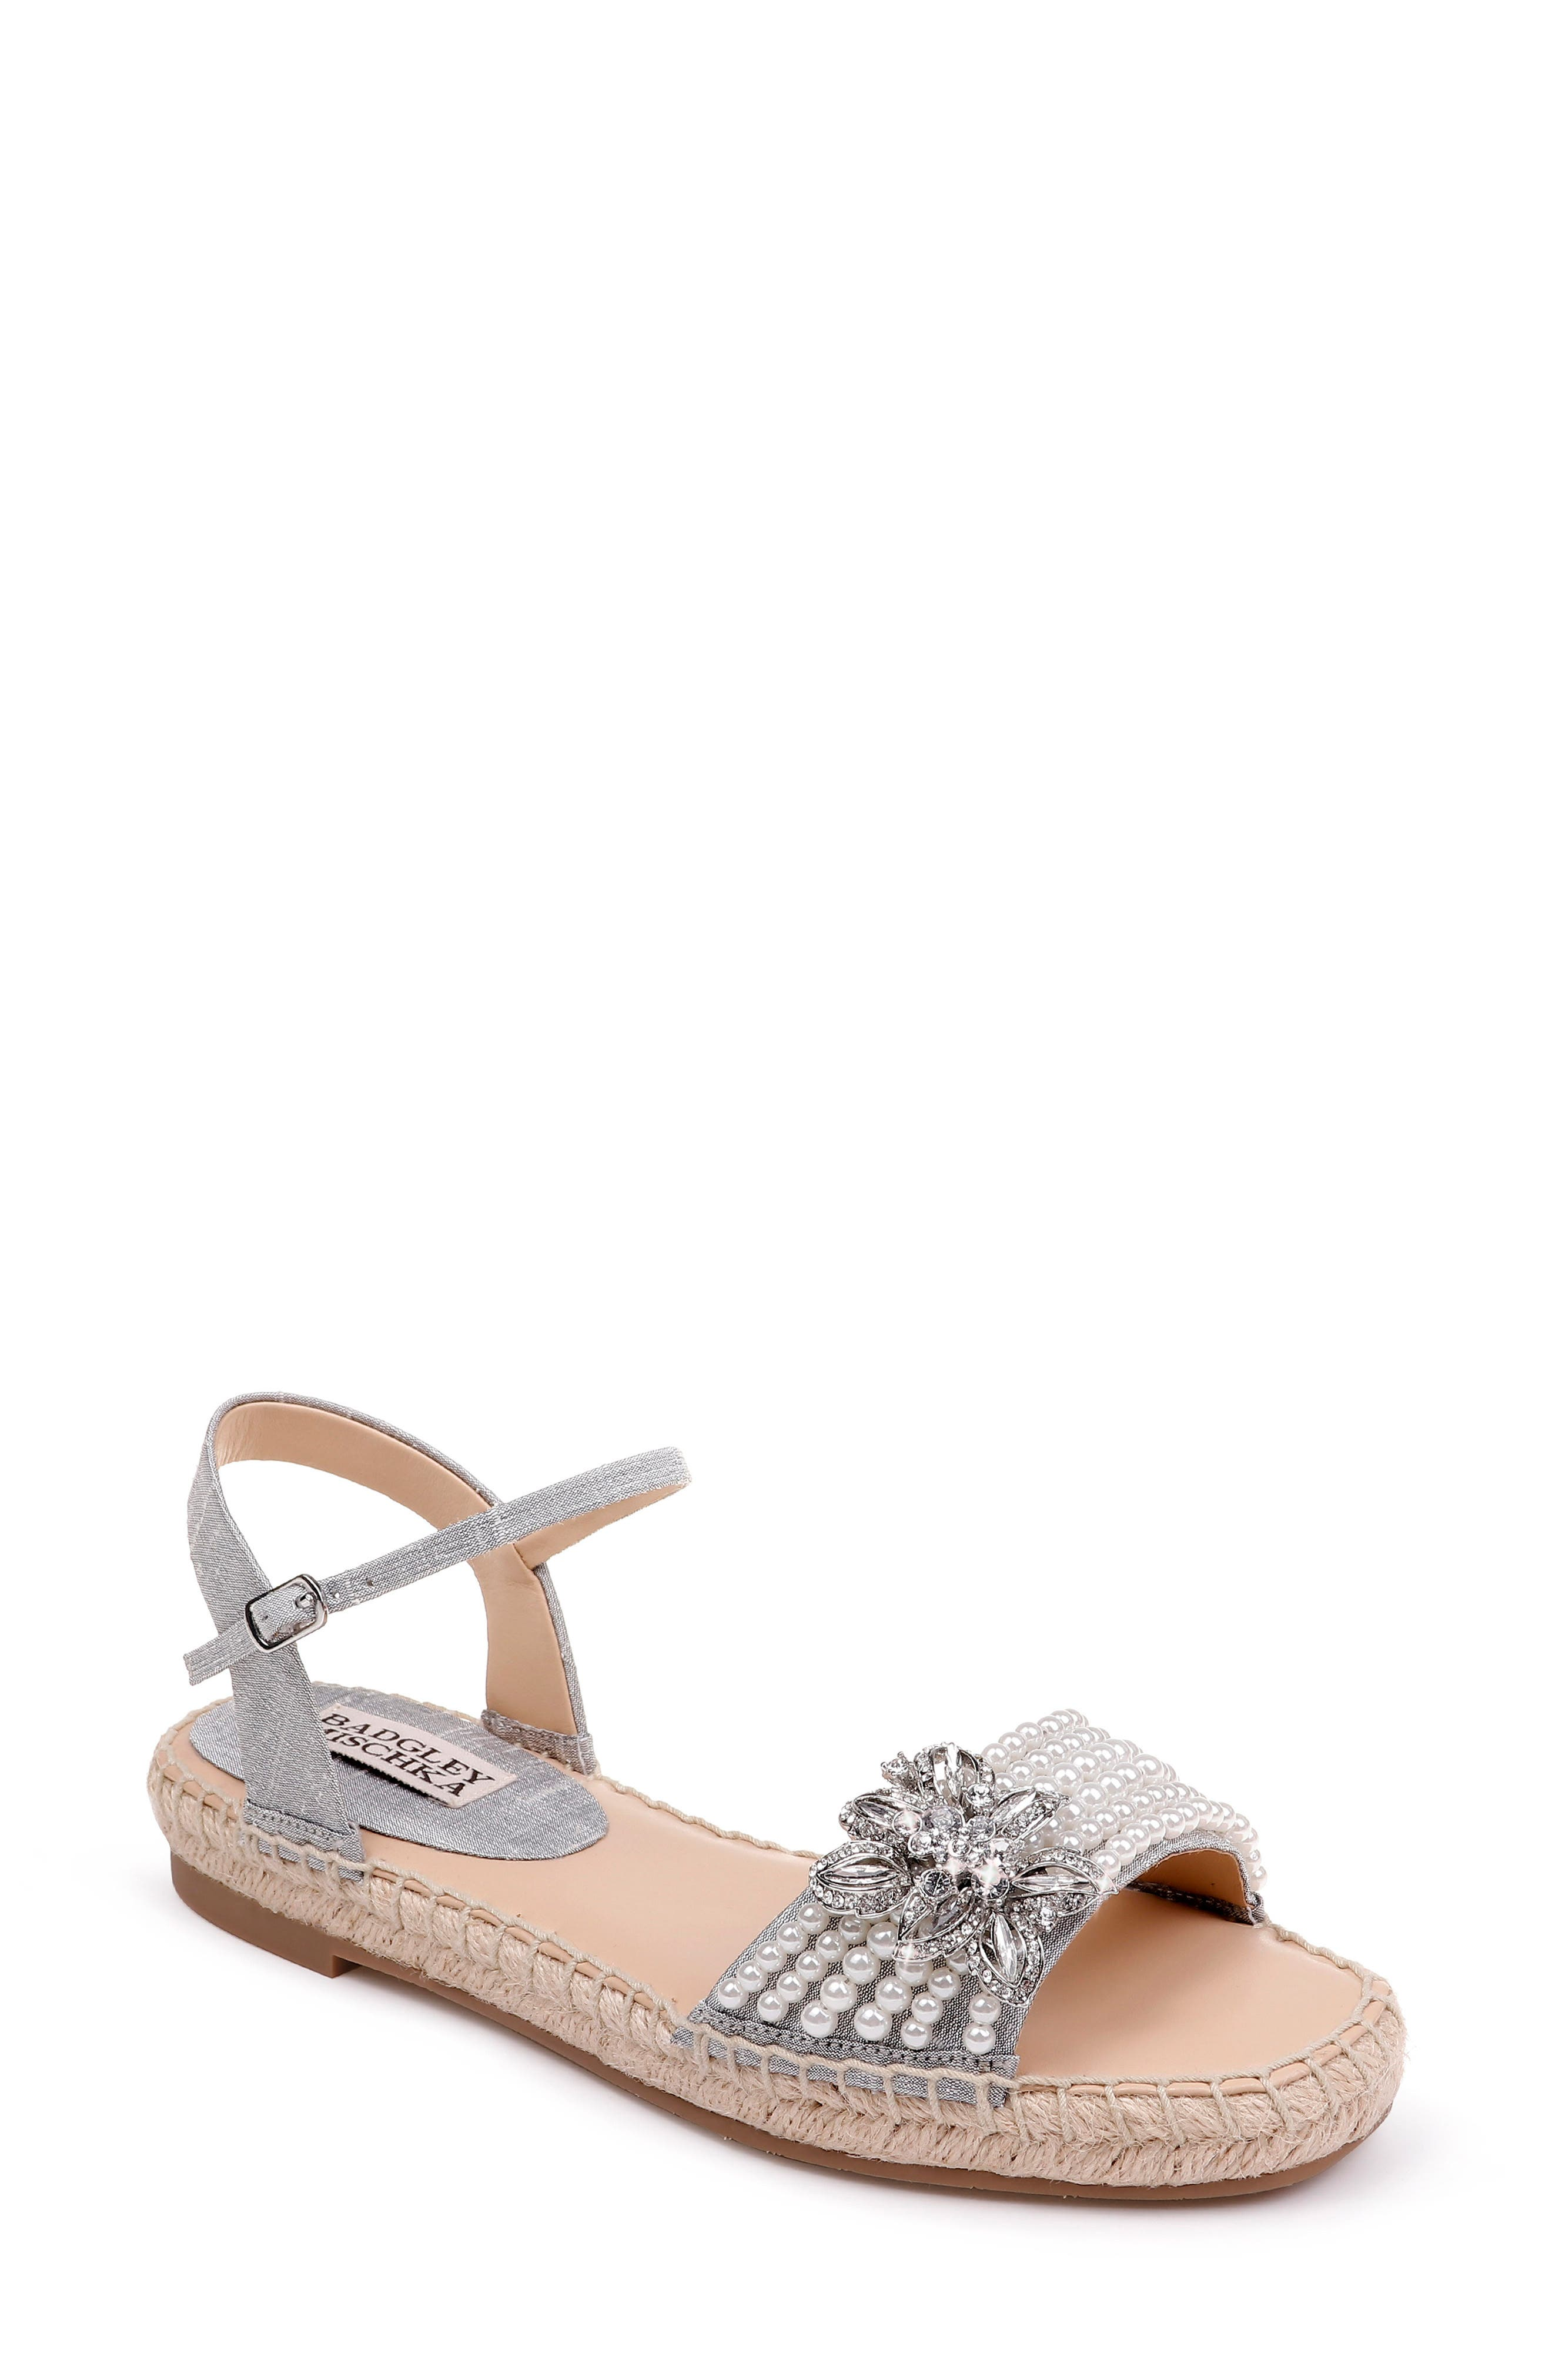 Badgley Mischka Leandra Espadrille Sandal, Main, color, SILVER FABRIC